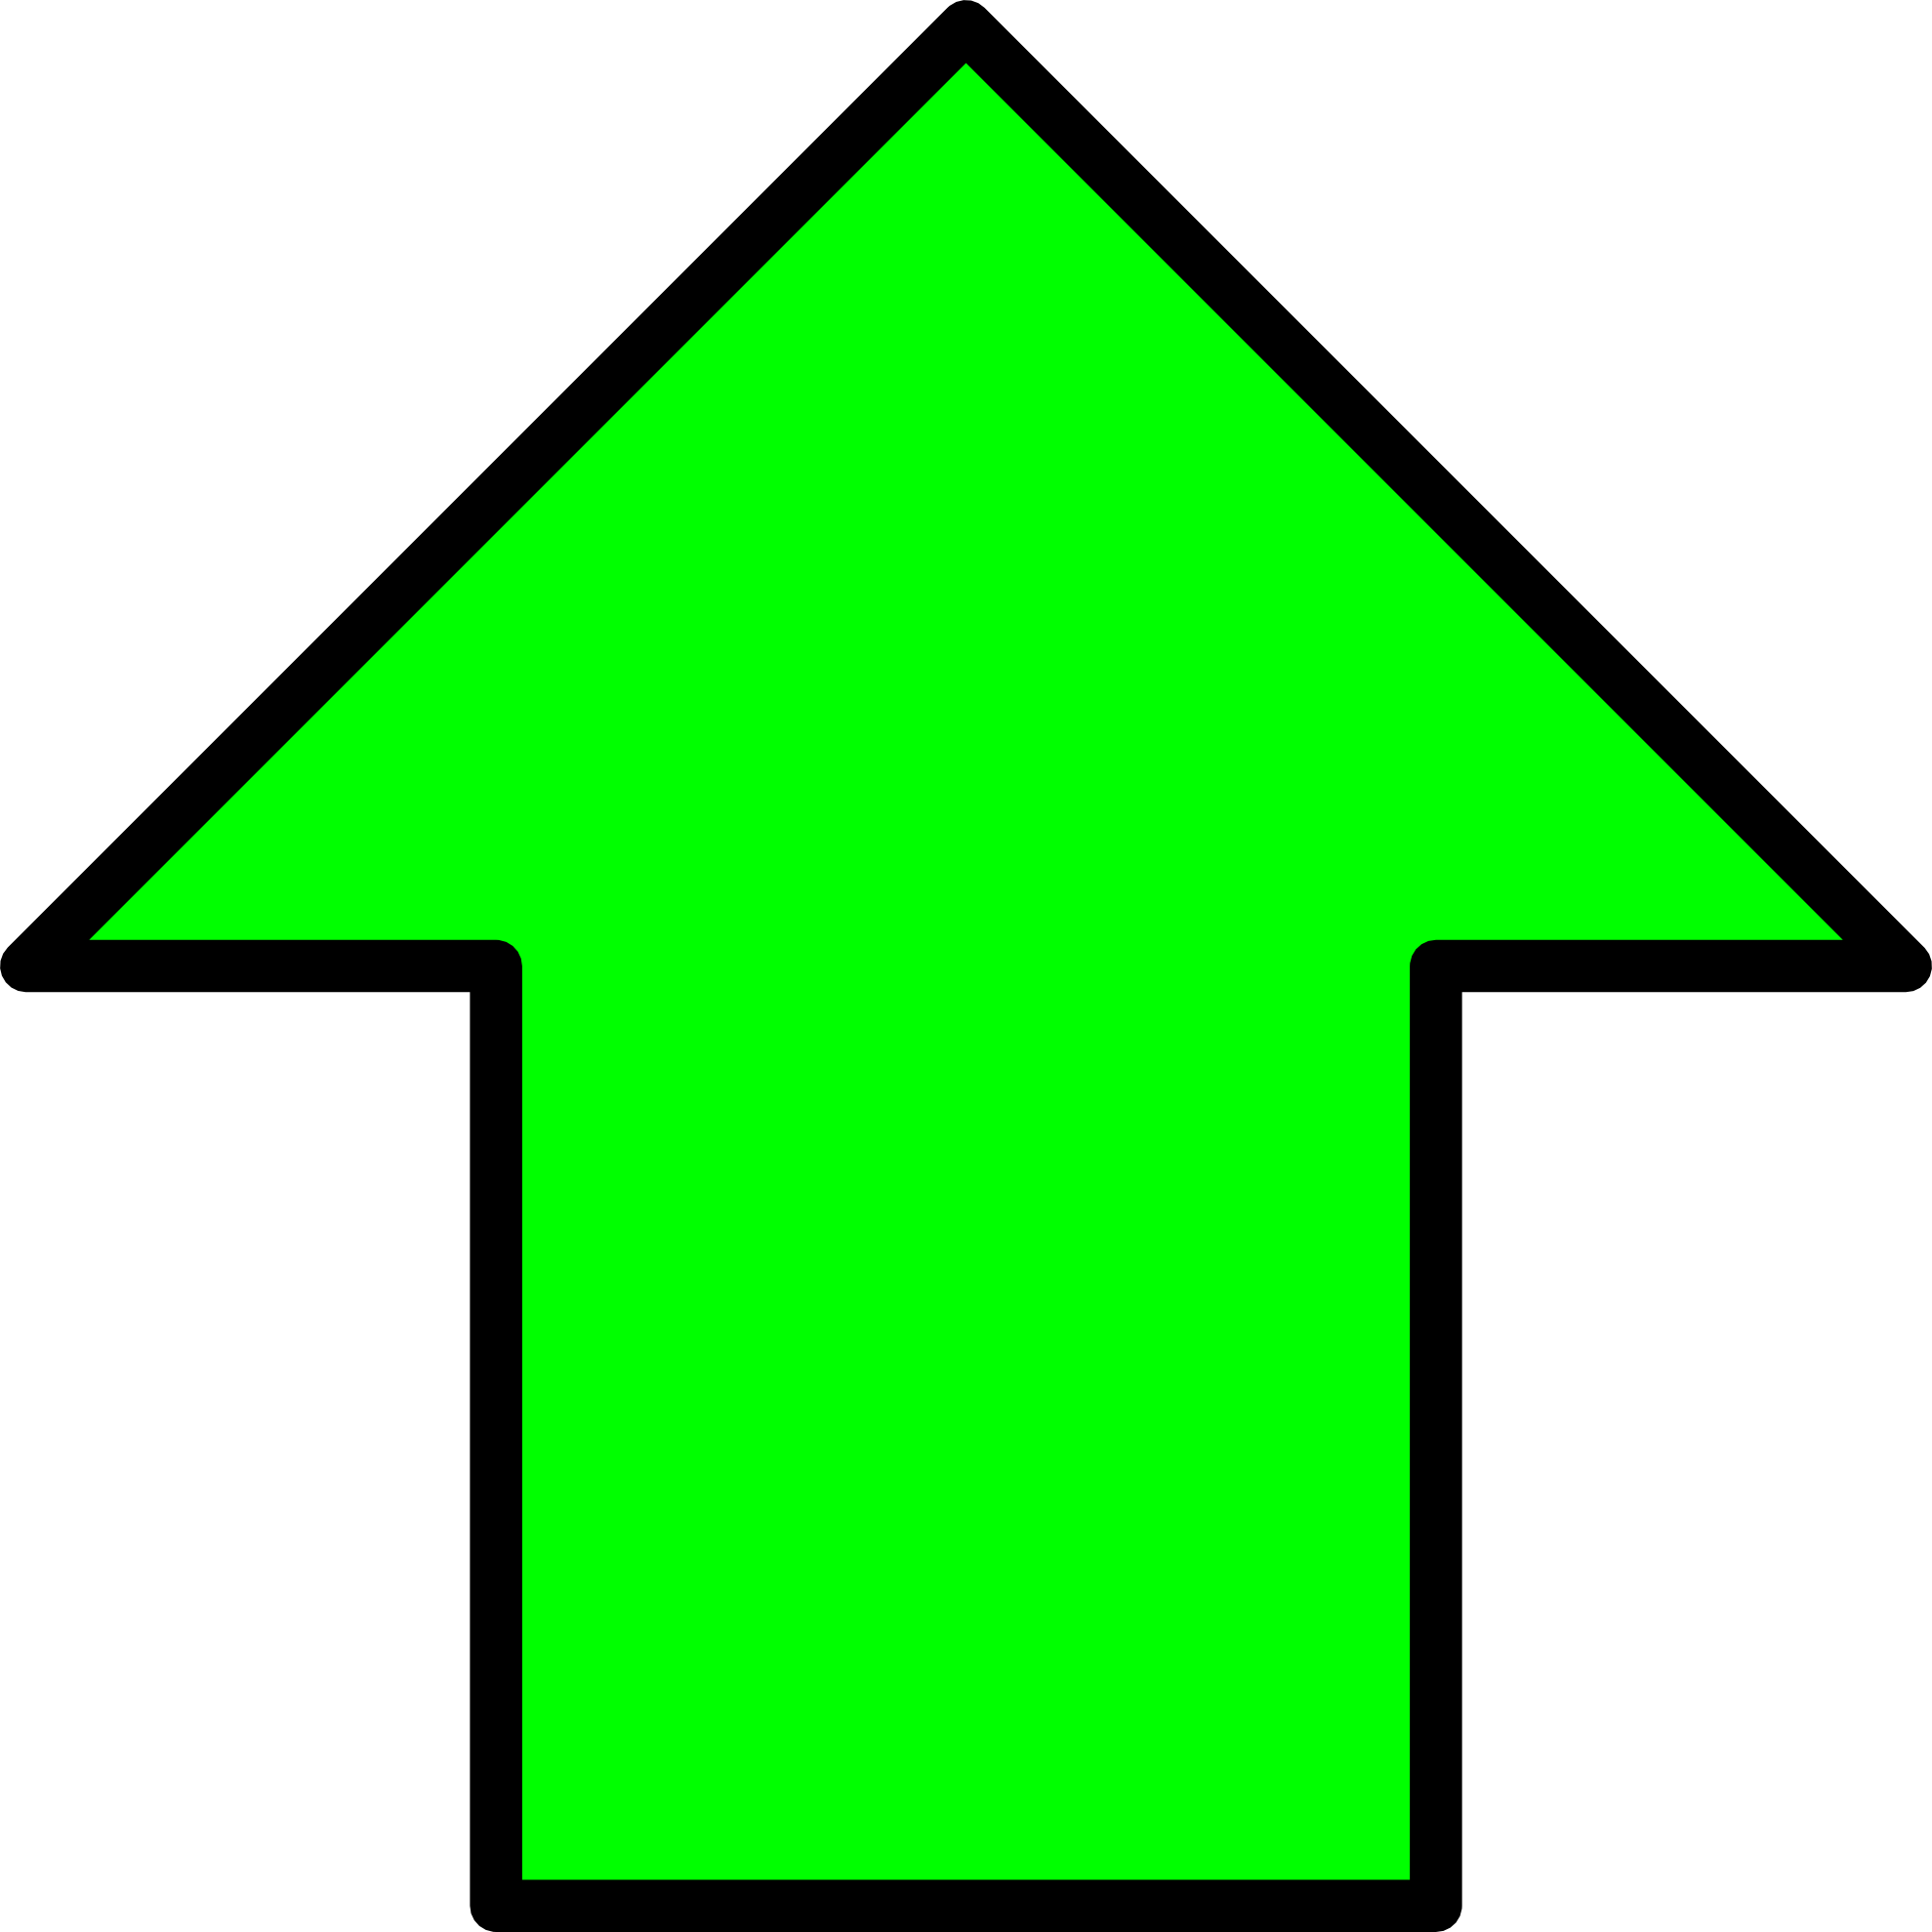 Green up arrow image